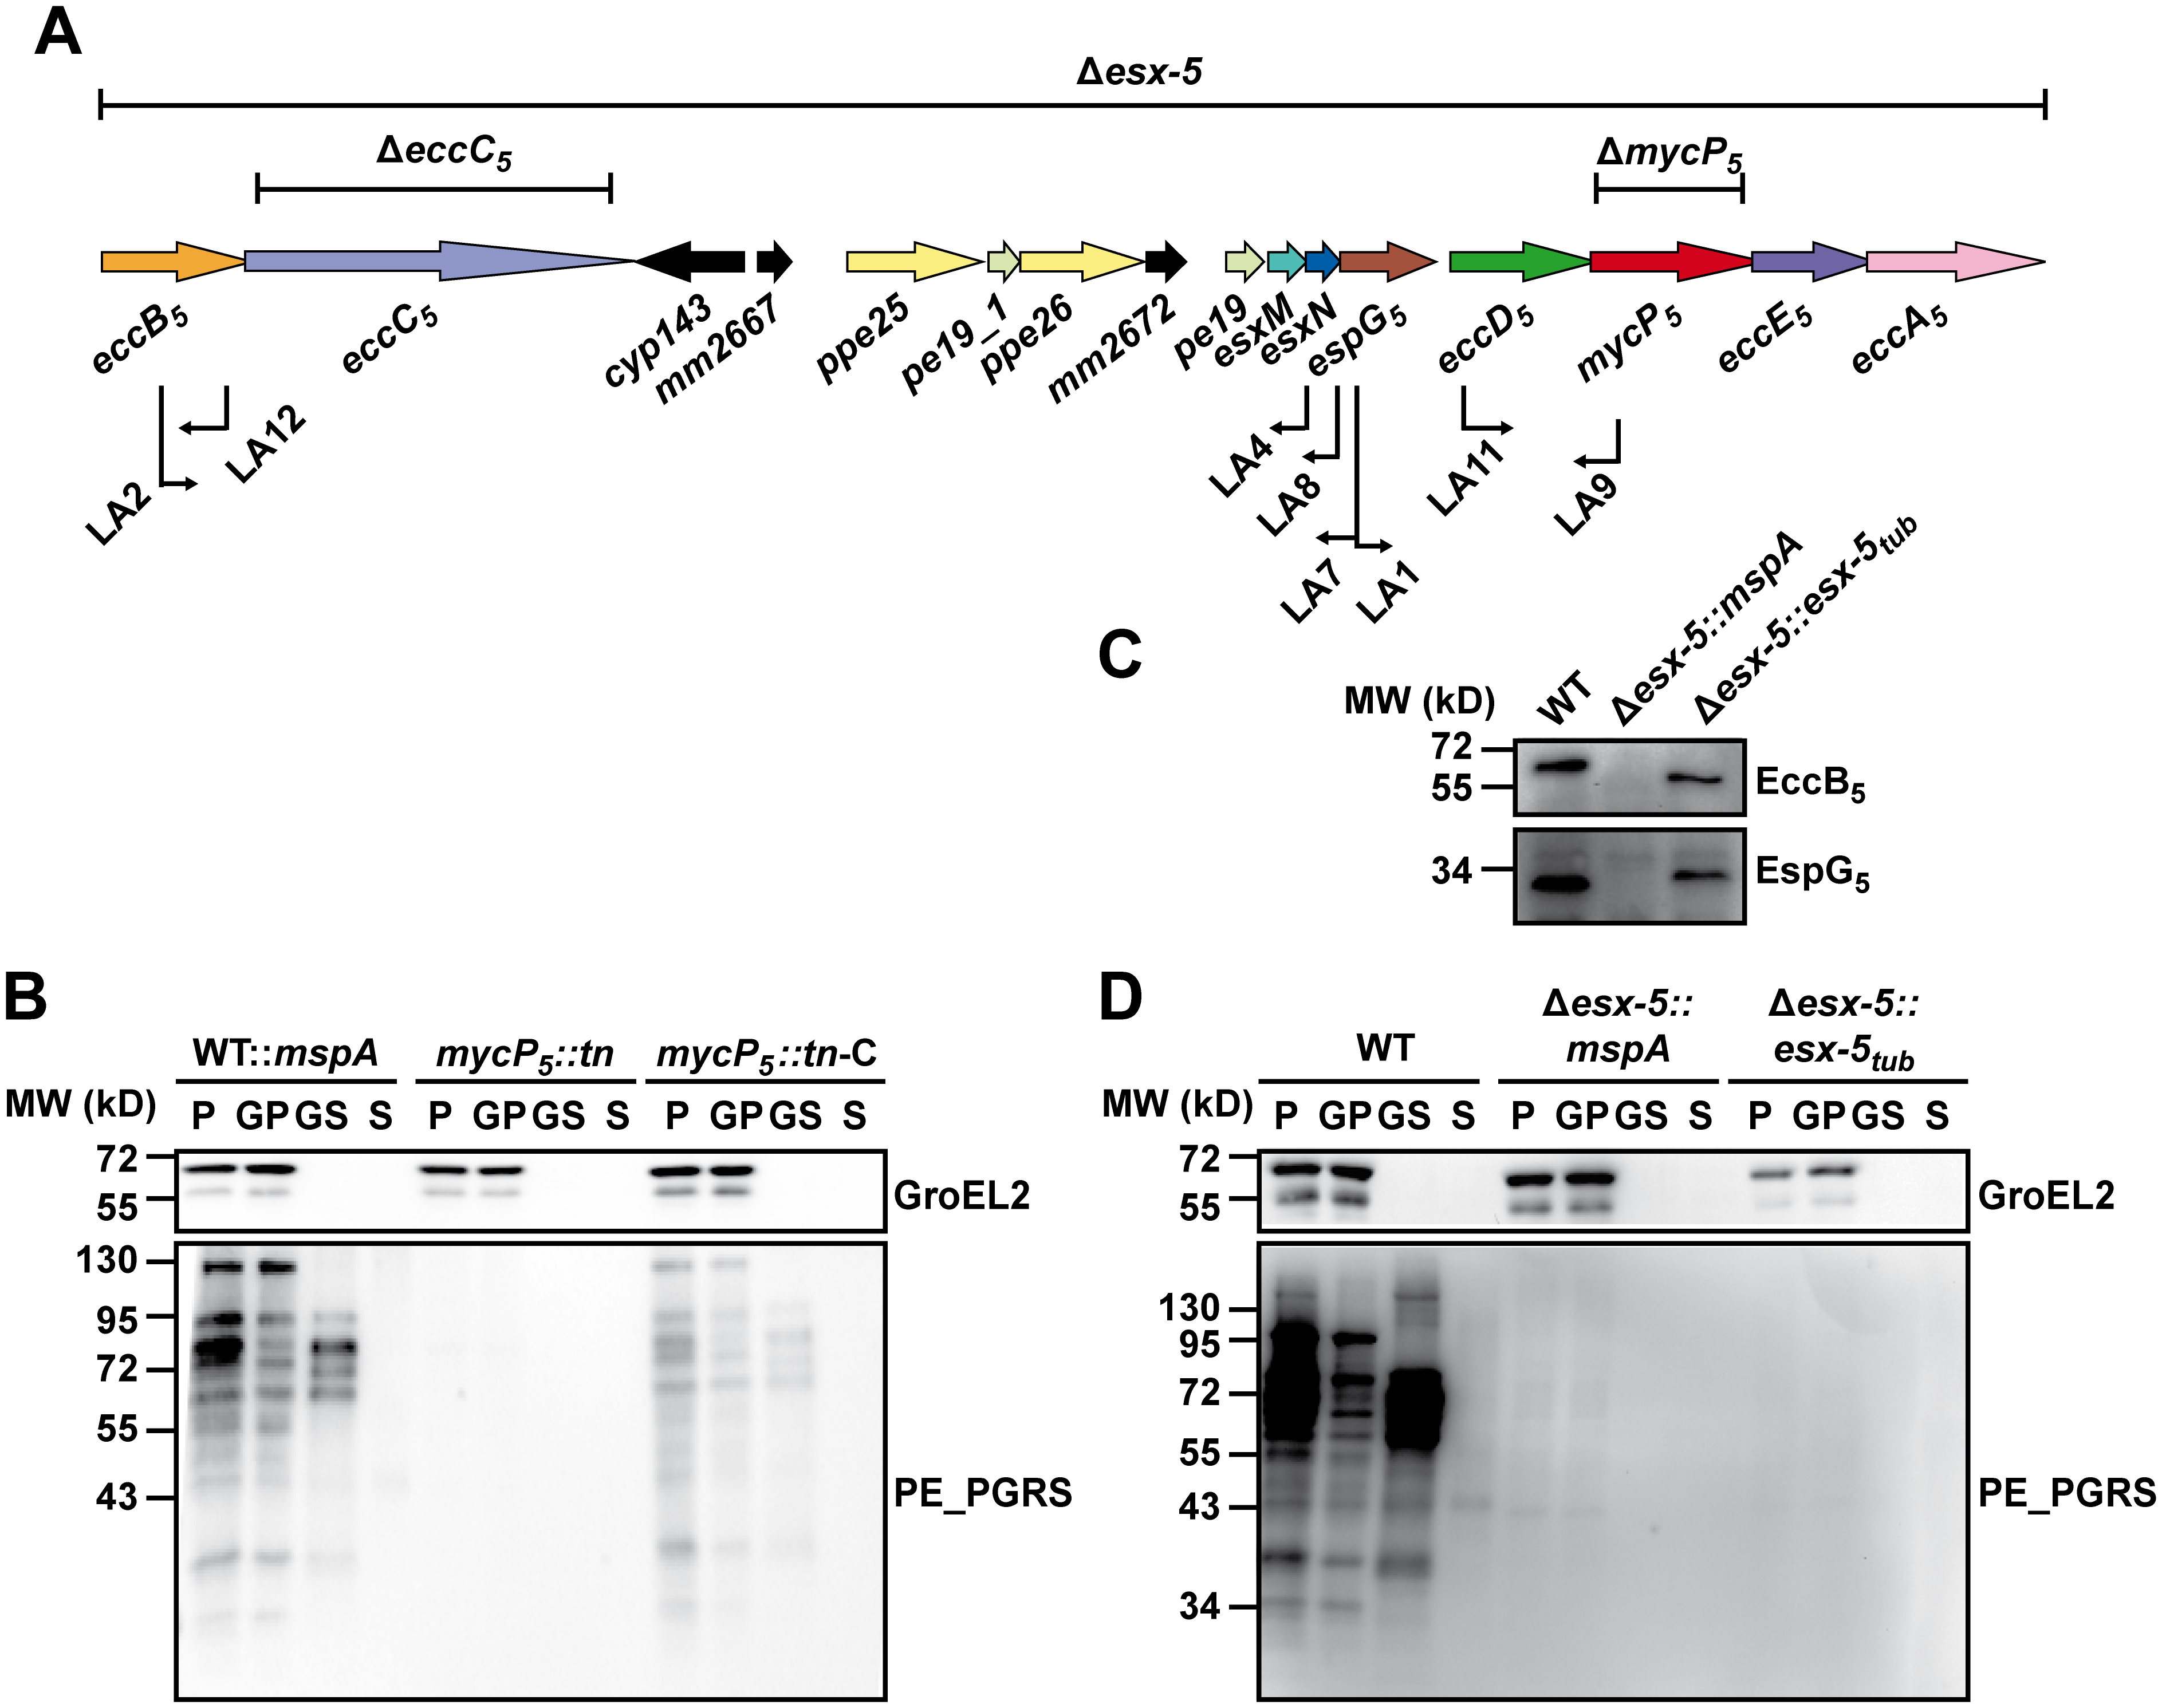 Secretion analysis of ESX-5 mutant strains.